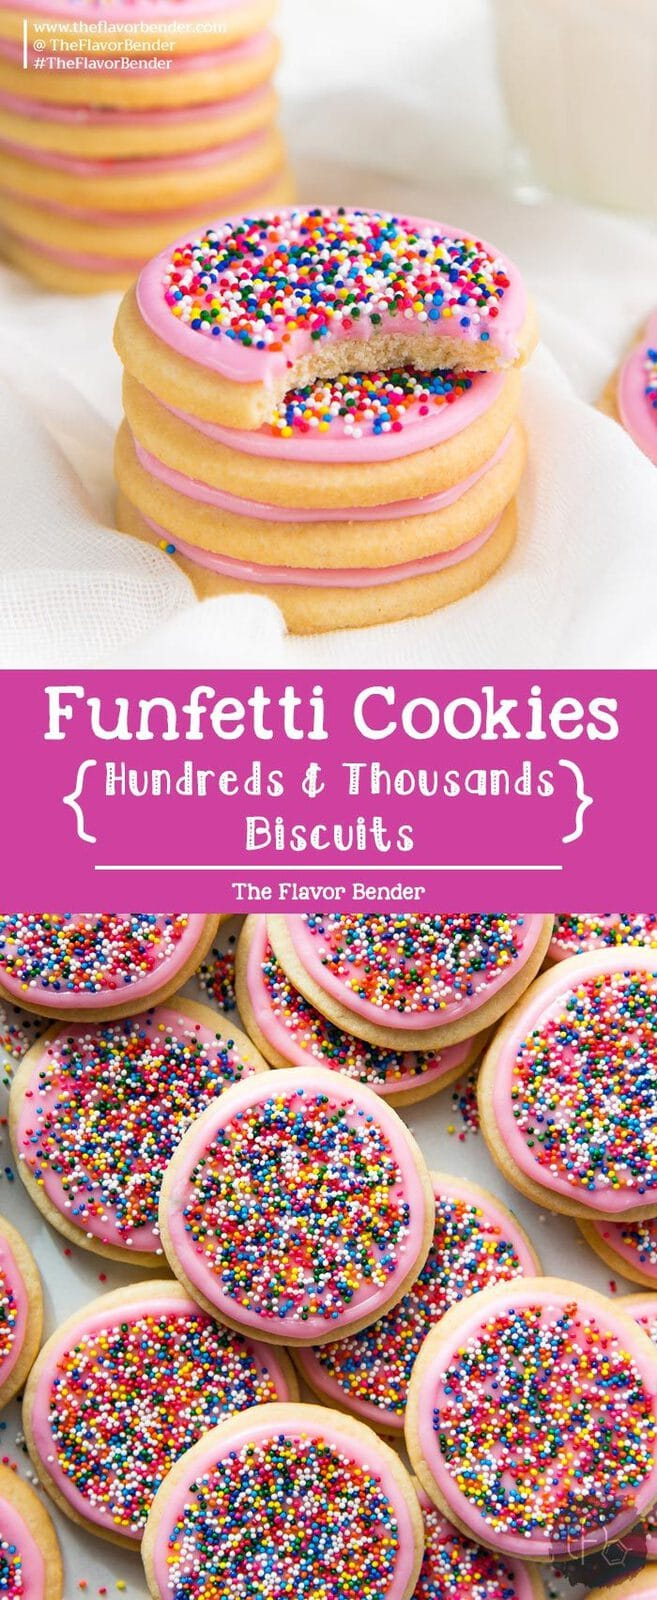 Funfetti cookies - also known as Hundreds and Thousands biscuits are soft, buttery and milky cookies topped with rainbow sprinkles and are an absolute crowd favorite! #FunfettiCookies #SugarCookies #HundredsAndThousands #NewZealandRecipes #CookieRecipes #FrostedSugarCookies